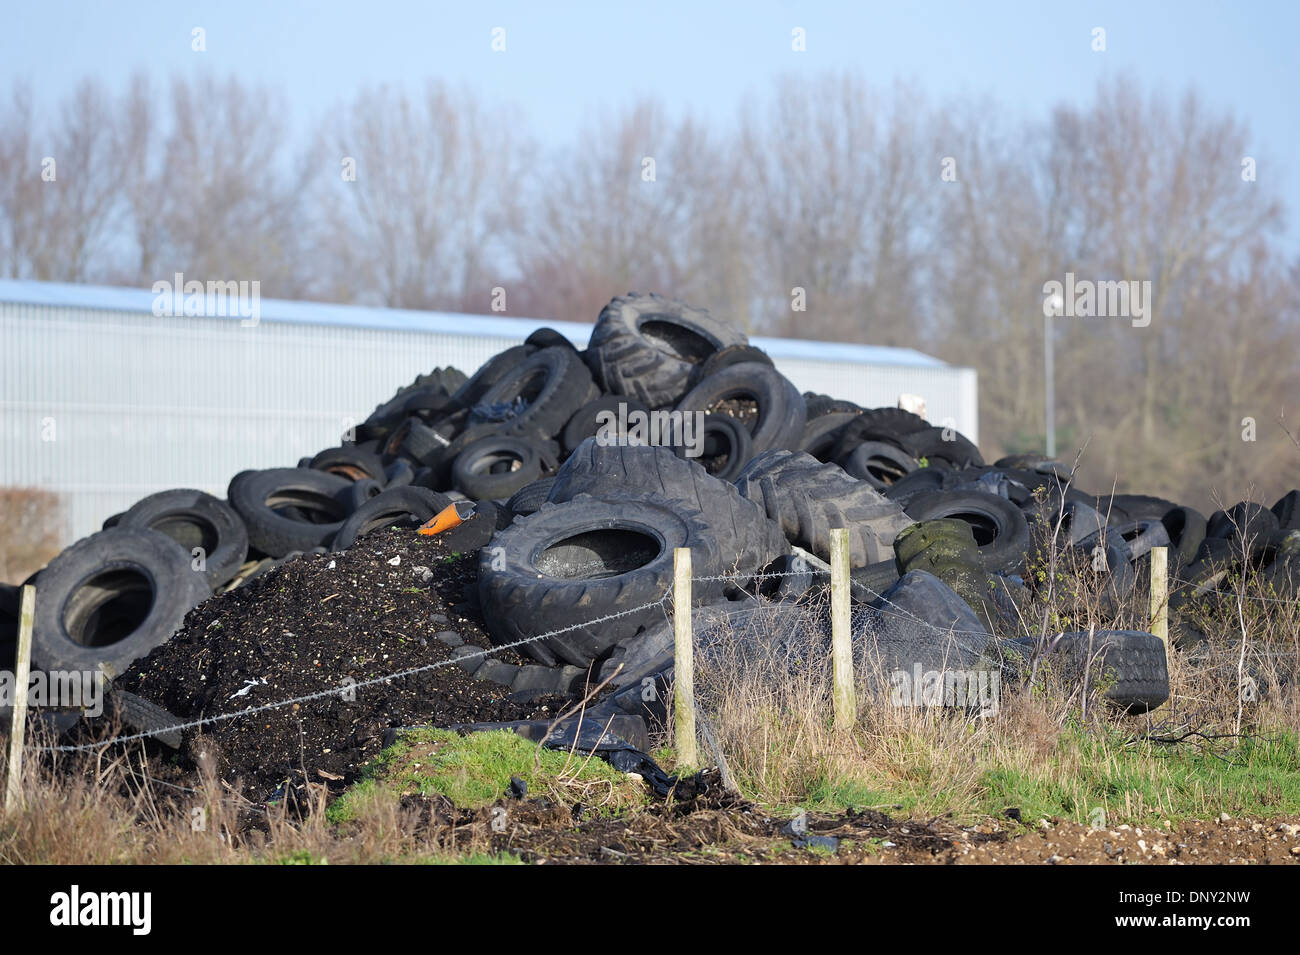 Old used worn out car and lorry tires tyres dumped in a pile with other waste  causing and environmental problem for the future - Stock Image